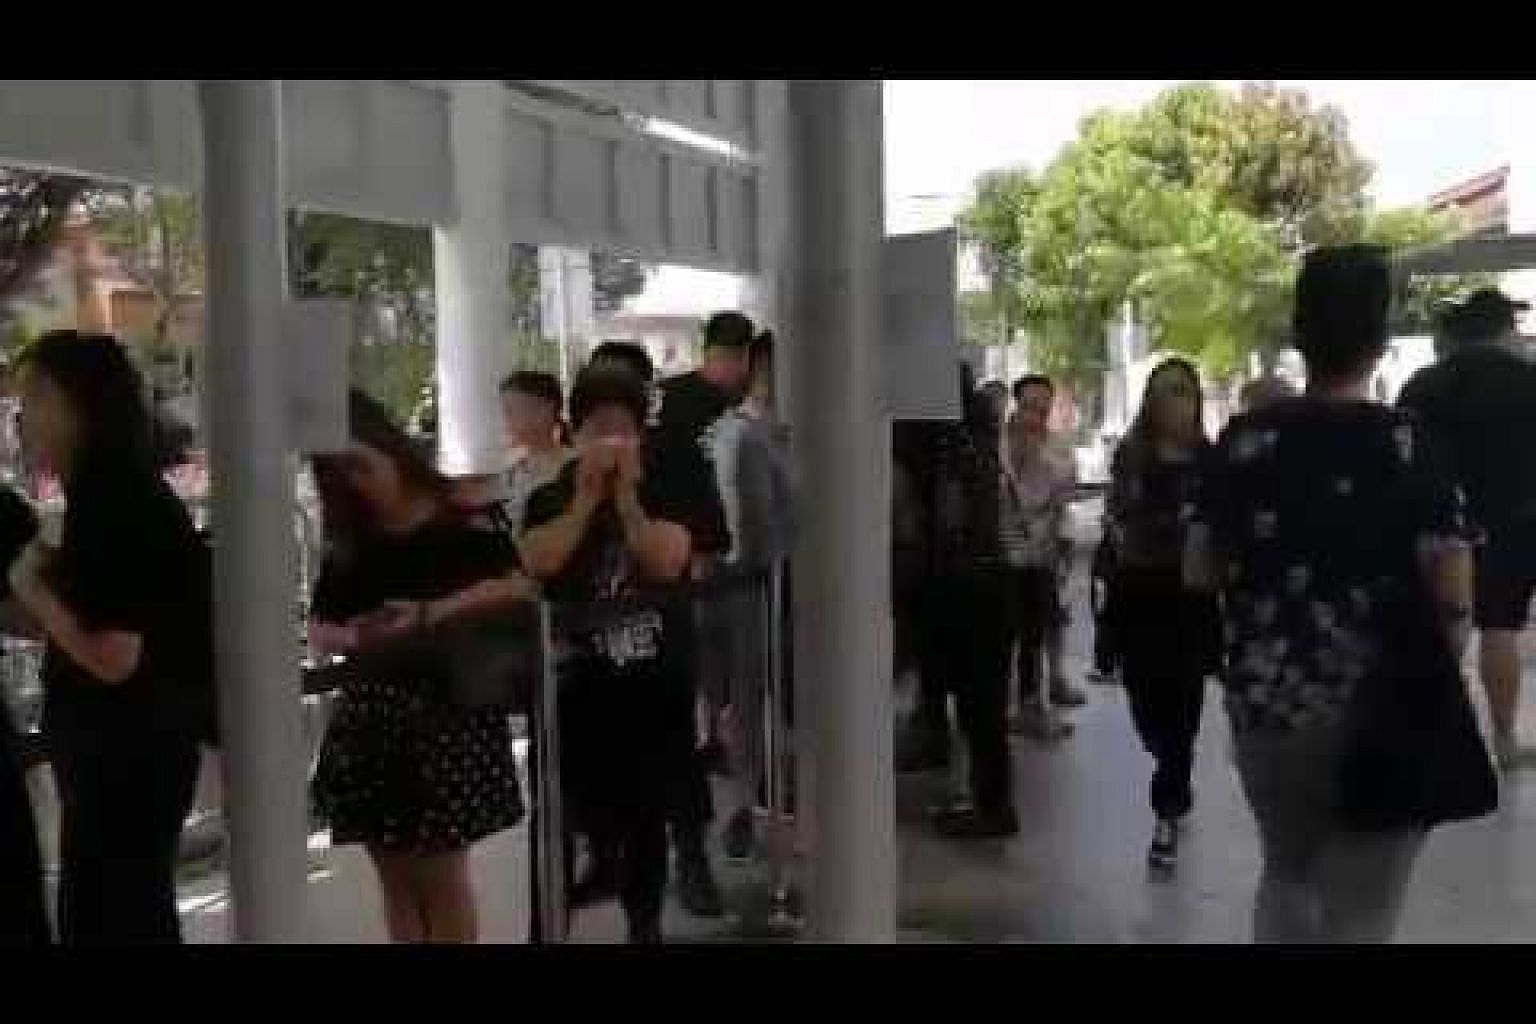 Aloysius Pang's public memorial: Fans queueing up to pay their respects